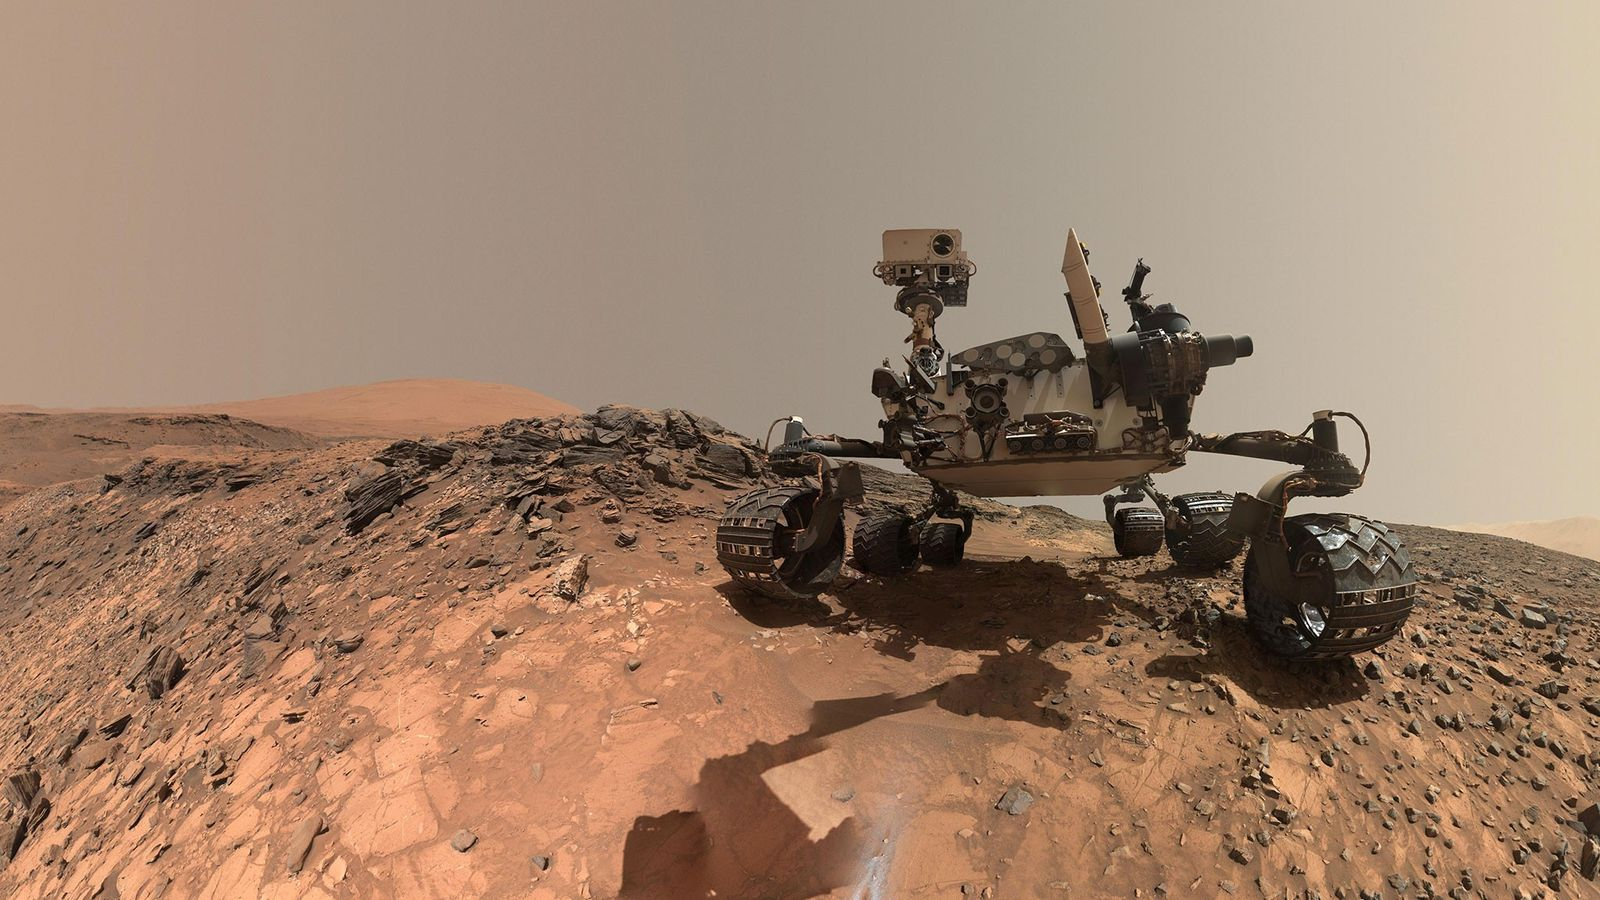 NASA's Curiosity Mars rover pauses at the lower region of Mount Sharp to take a self-portrait ...